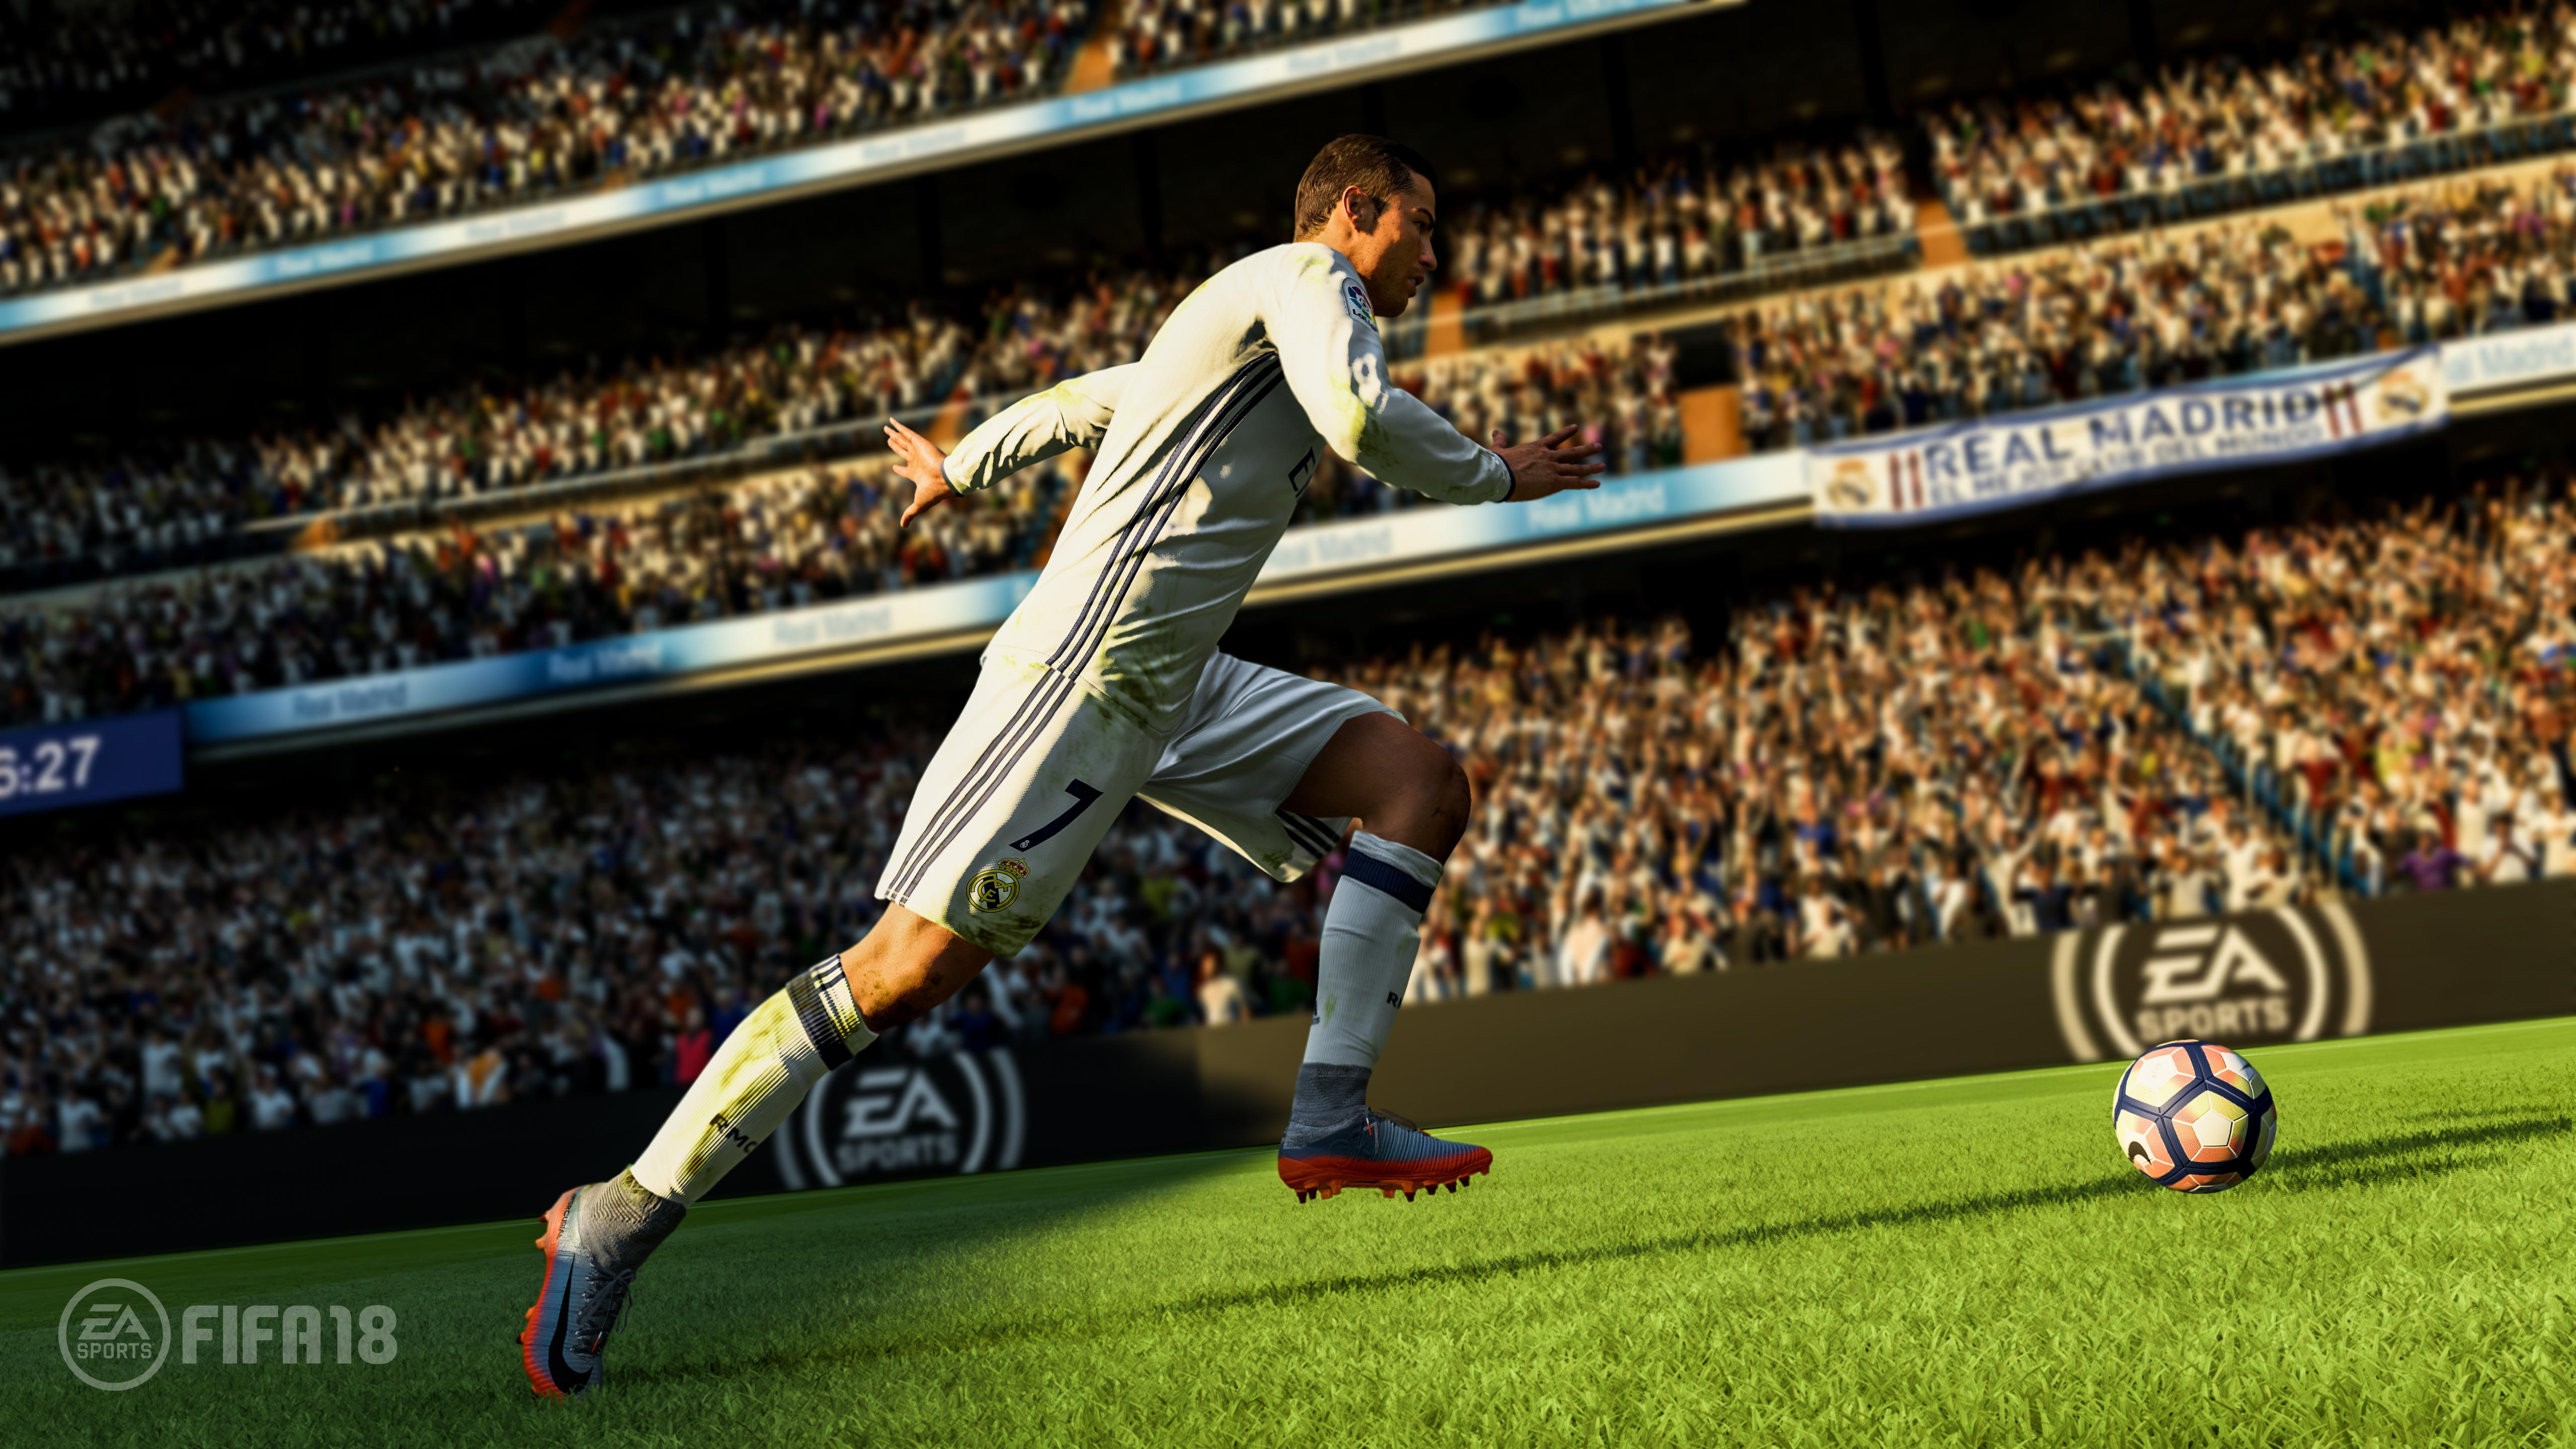 Cristiano Ronaldo was heavily motion captured for FIFA 18